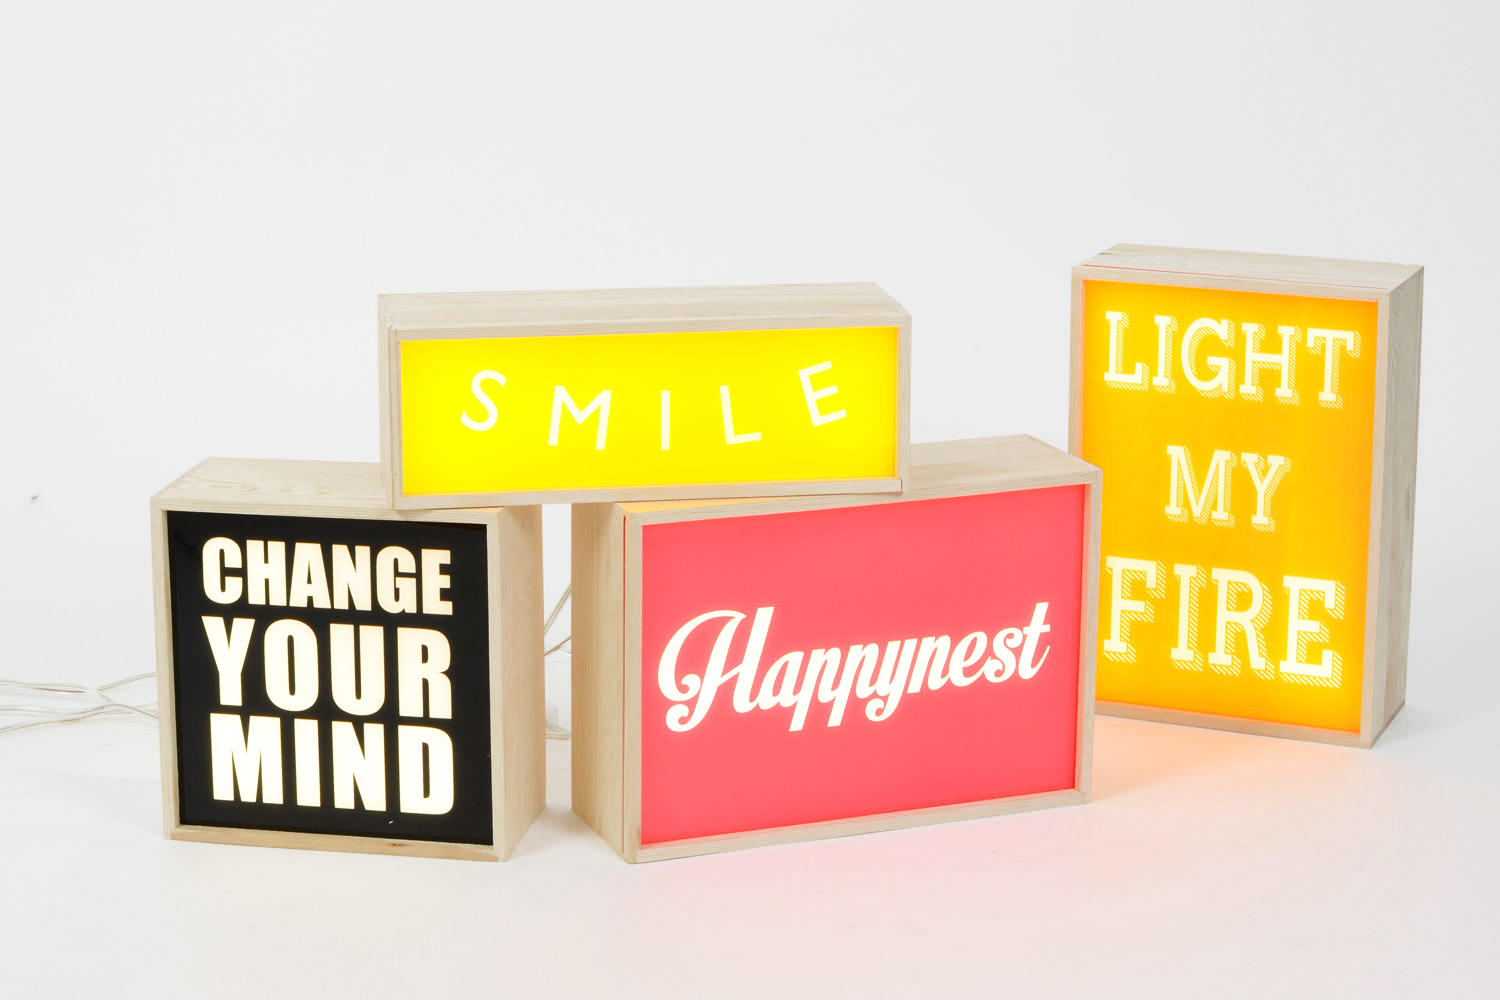 des boites lumineuses lightbox messages. Black Bedroom Furniture Sets. Home Design Ideas